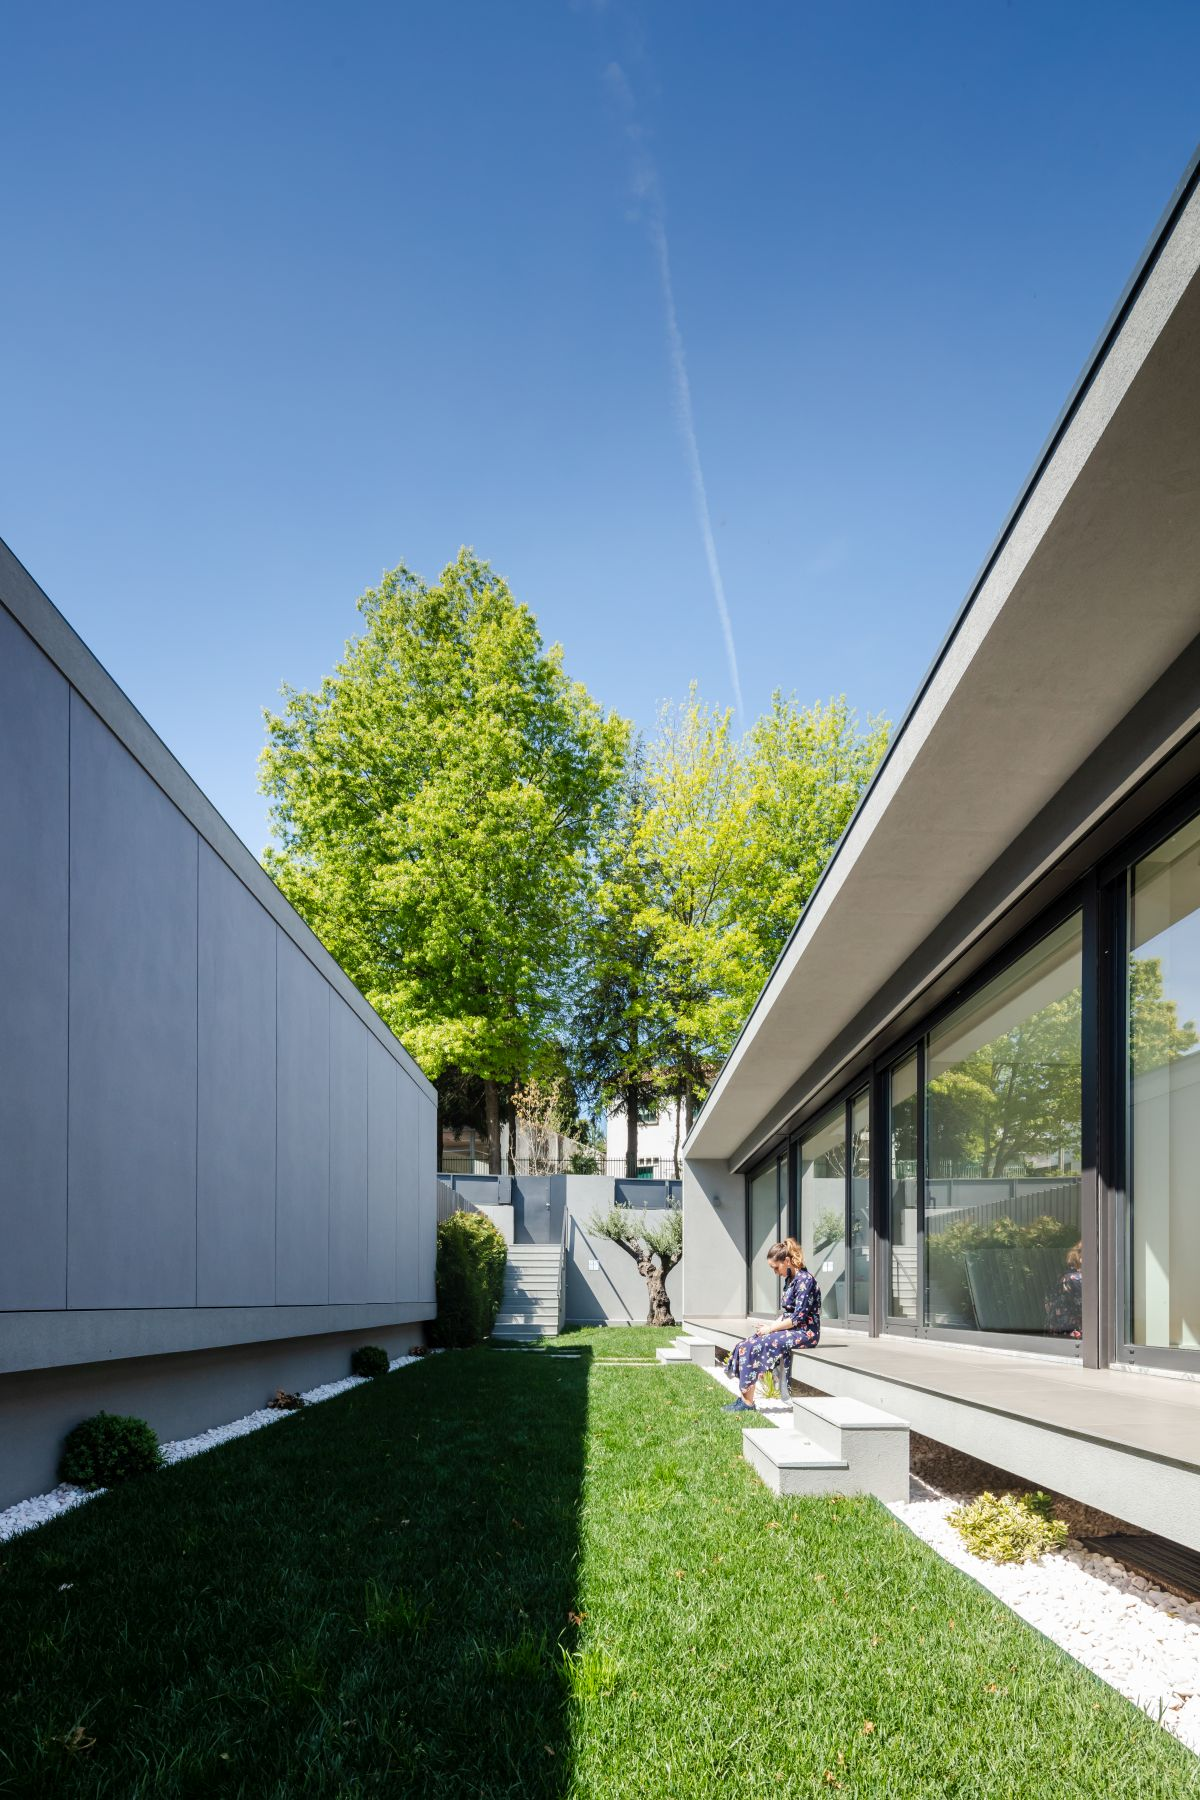 Each house also opens onto the small courtyard between it and the neighboring residence